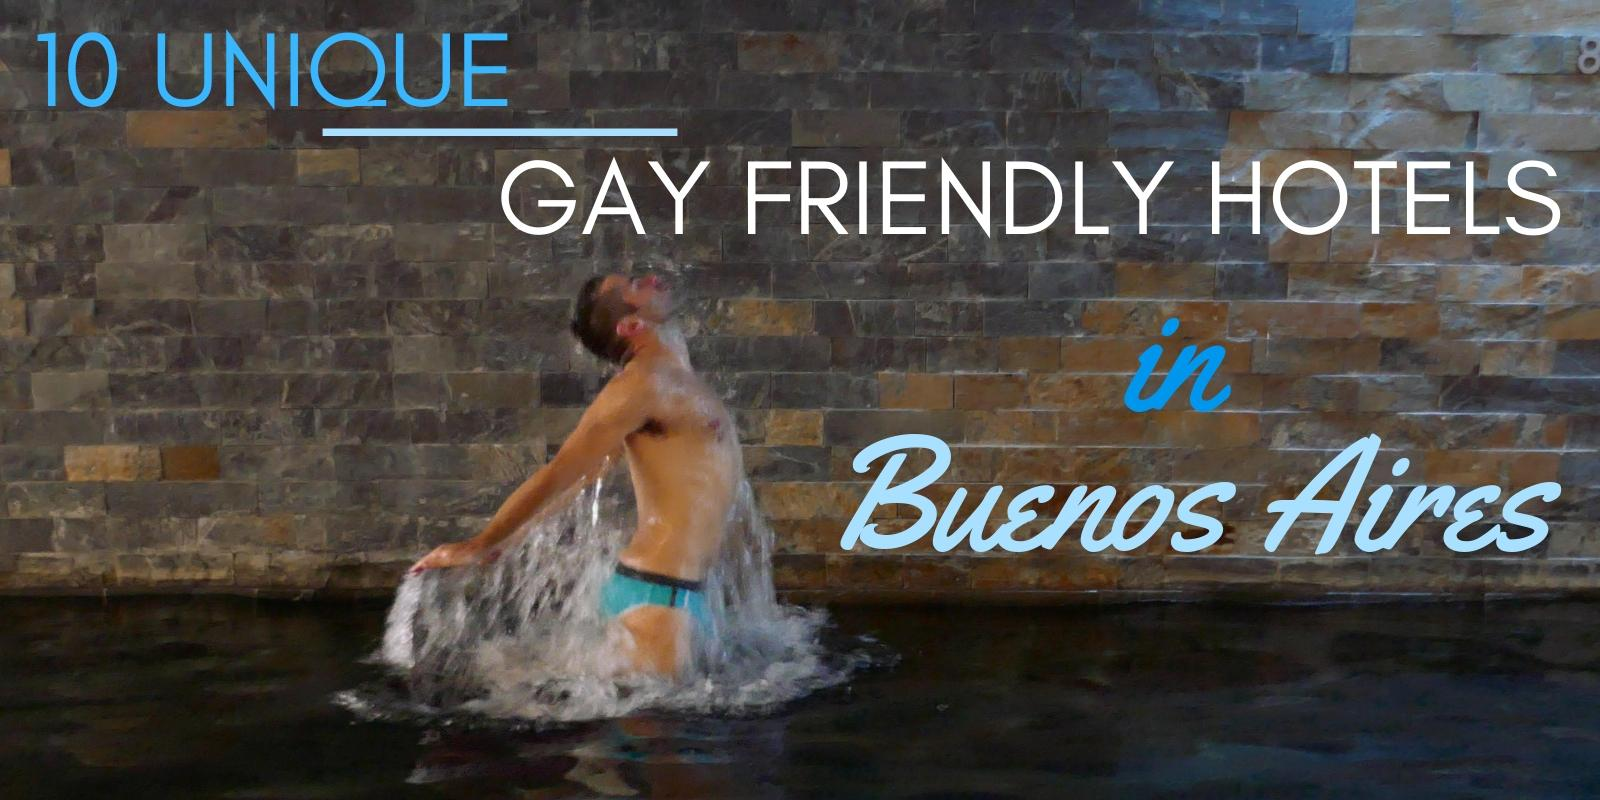 Our selection of the best unique and gay friendly places to stay in Buenos Aires, Argentina